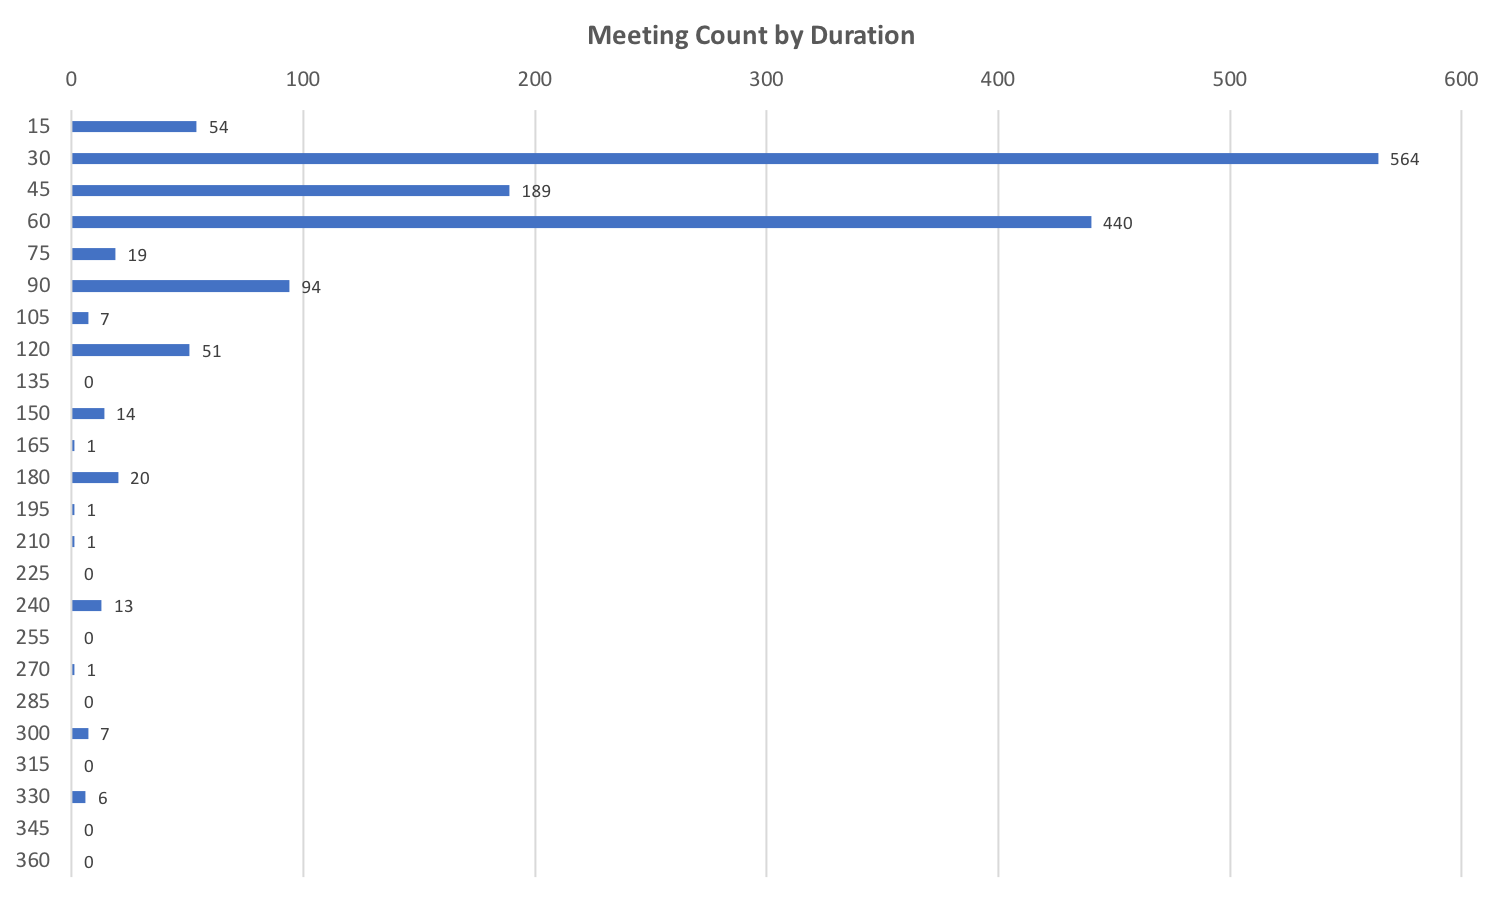 2017 Meetings by Duration